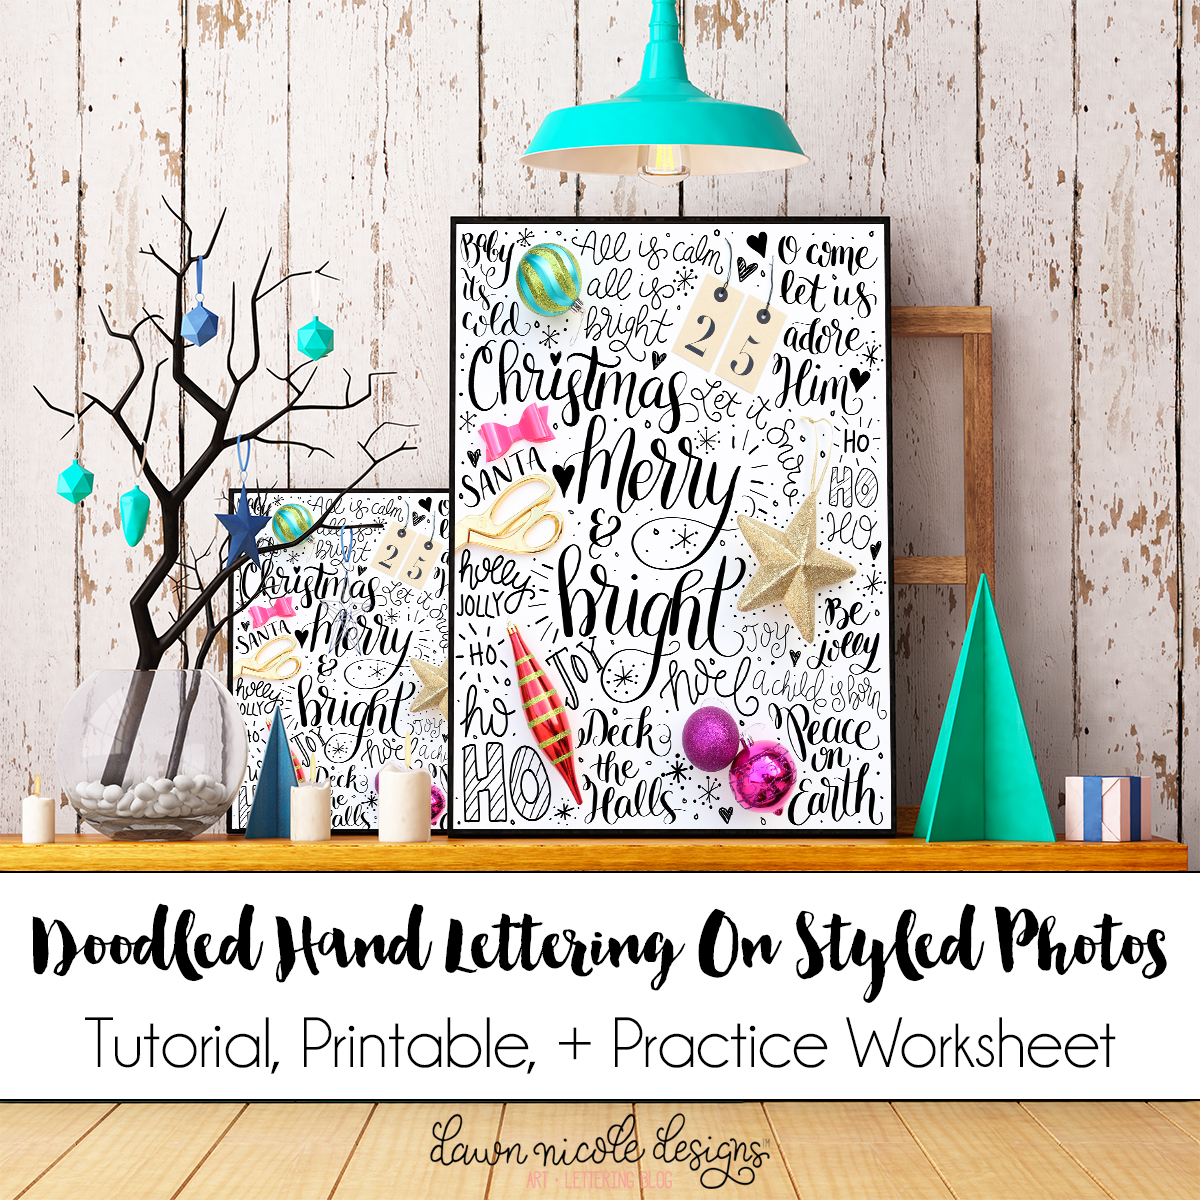 photo regarding Lettering Printable identify Free of charge Hand Lettering Printables